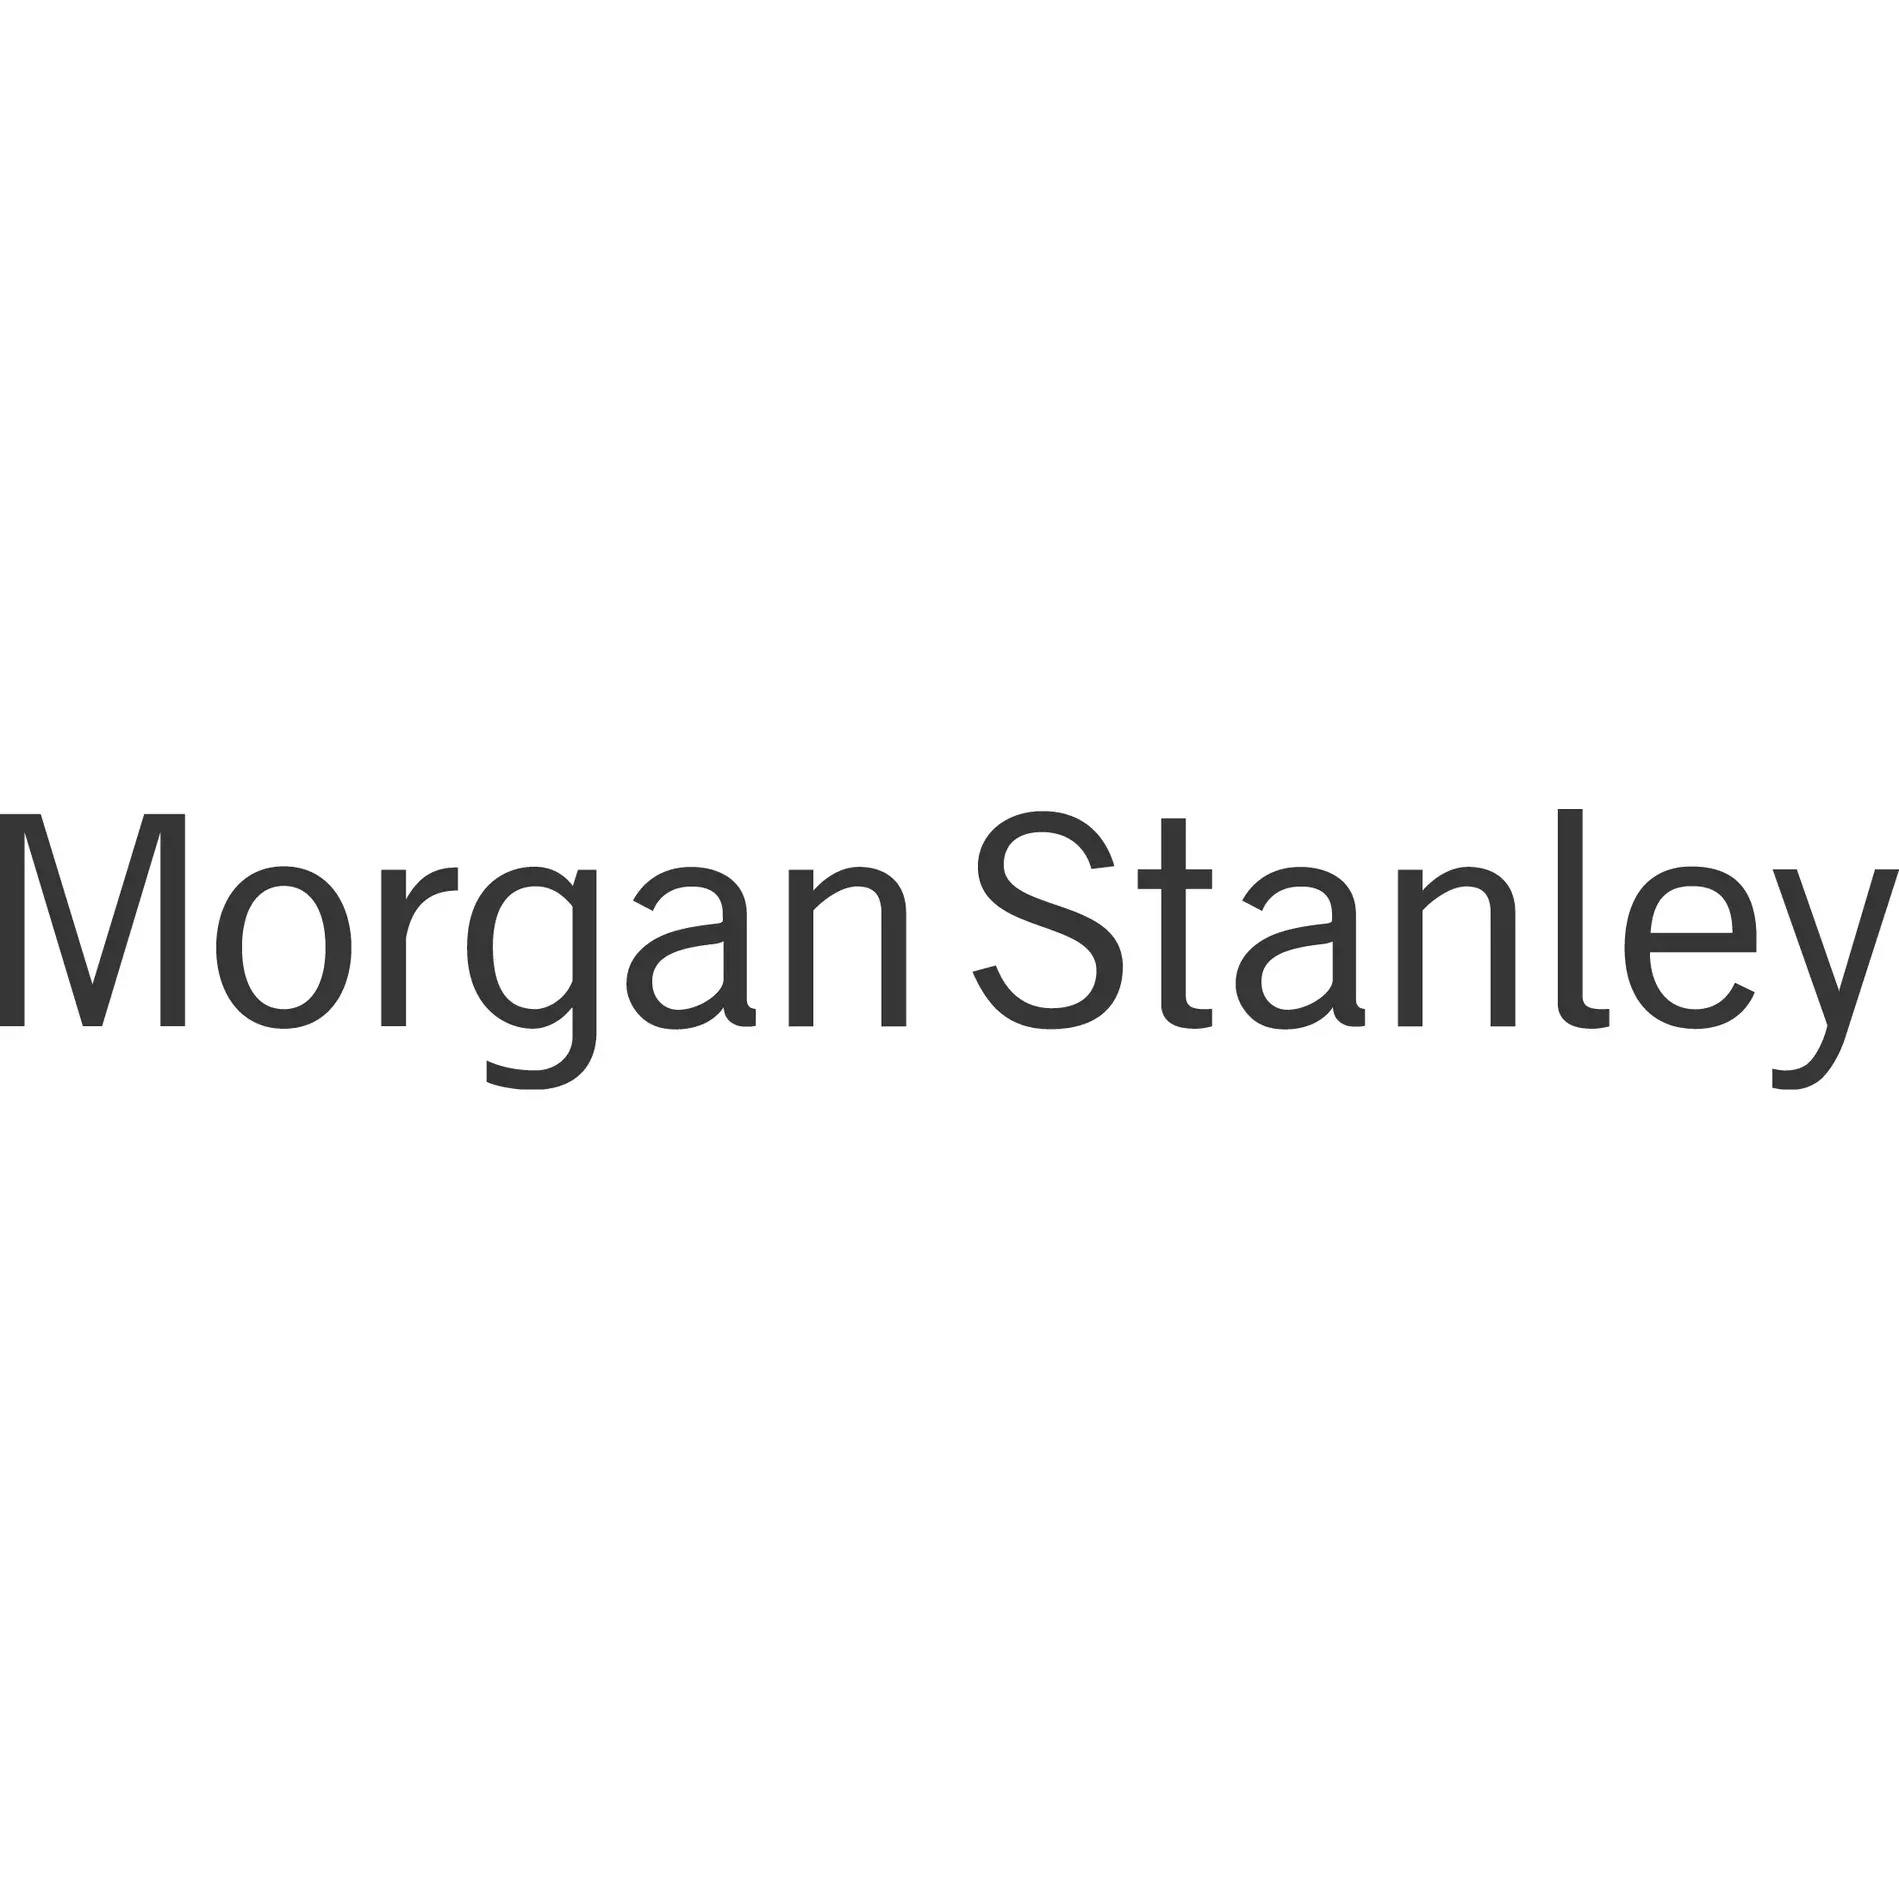 The Ross Group - Morgan Stanley